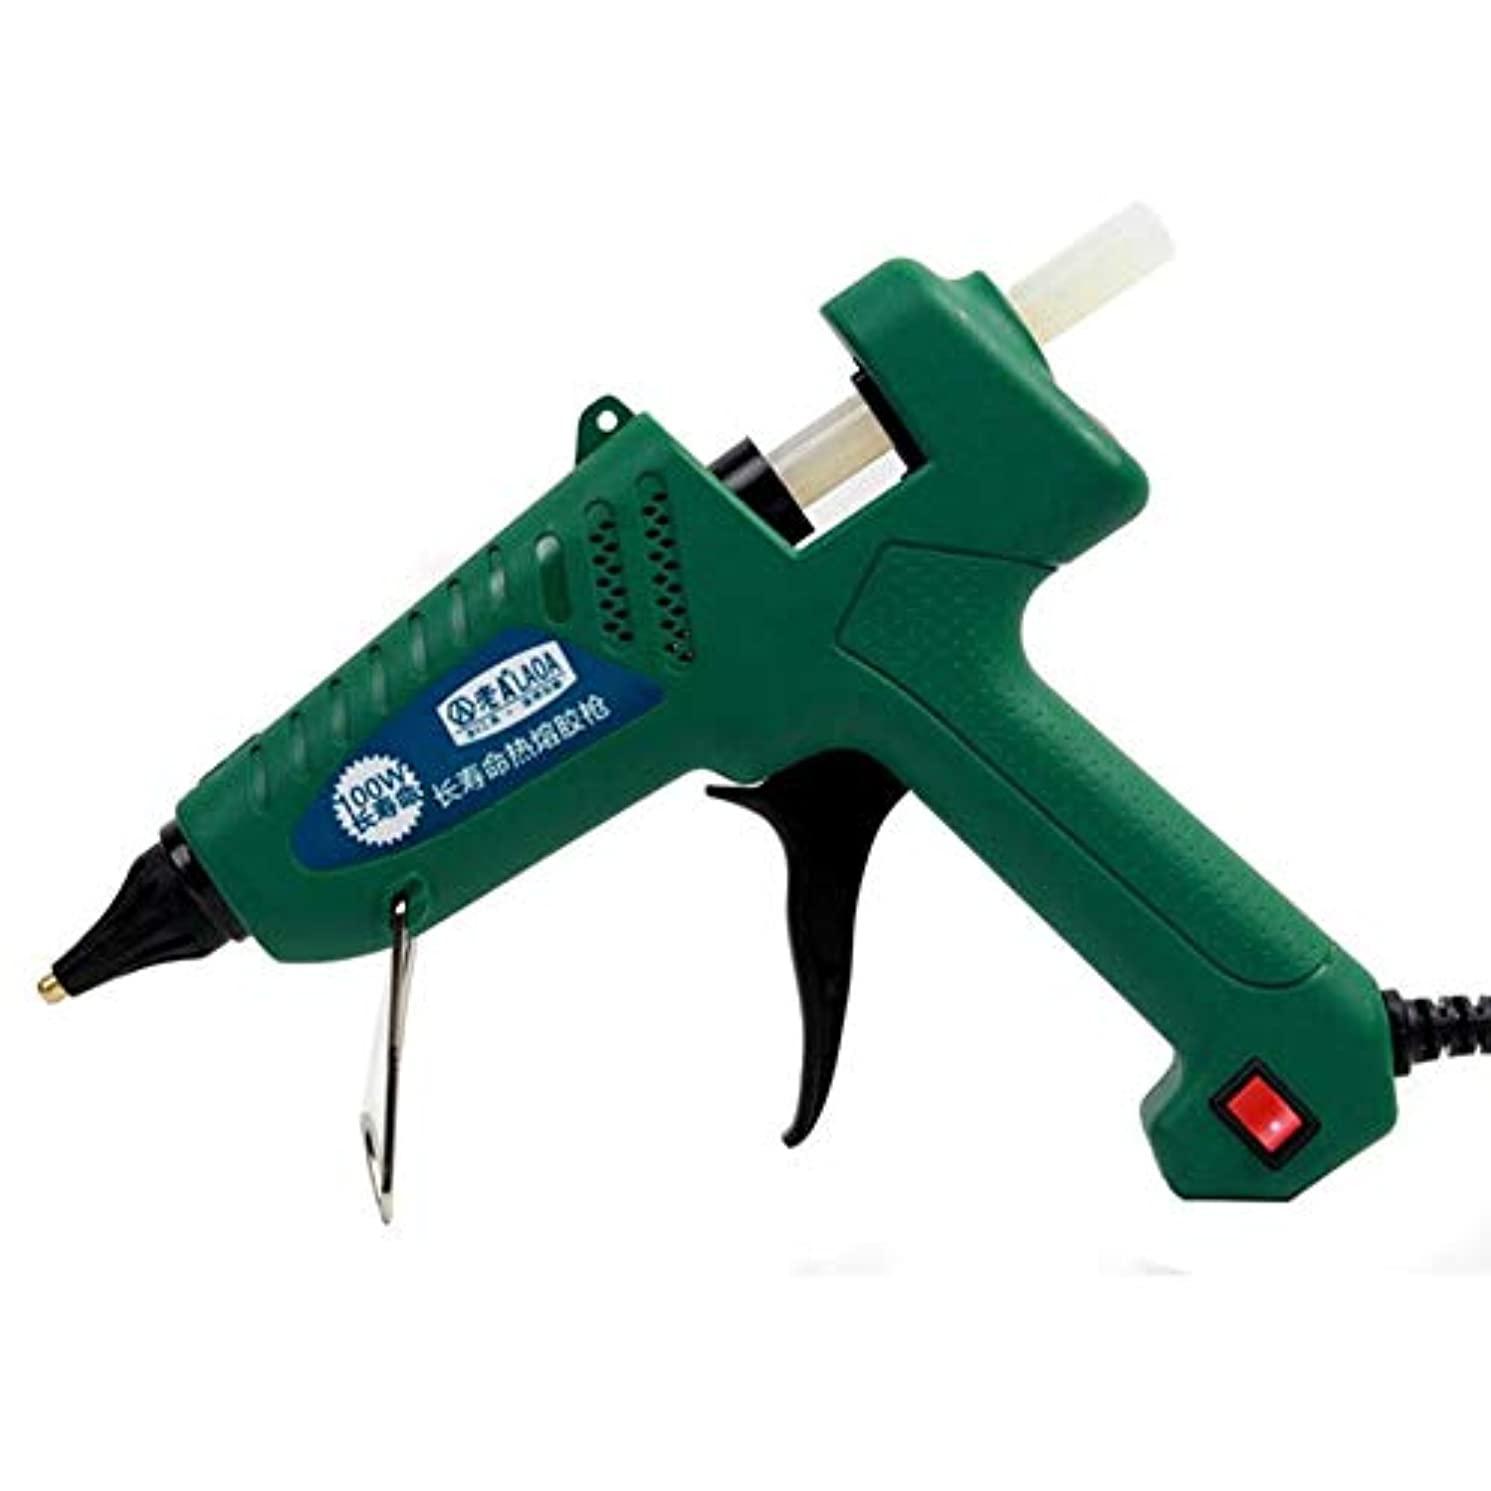 MqbY LA813100 100W Hot Melt Glue Gun For Metal/Wood Working Glue Stick Industrial Guns Thermo Electric Heat Temperature Tool